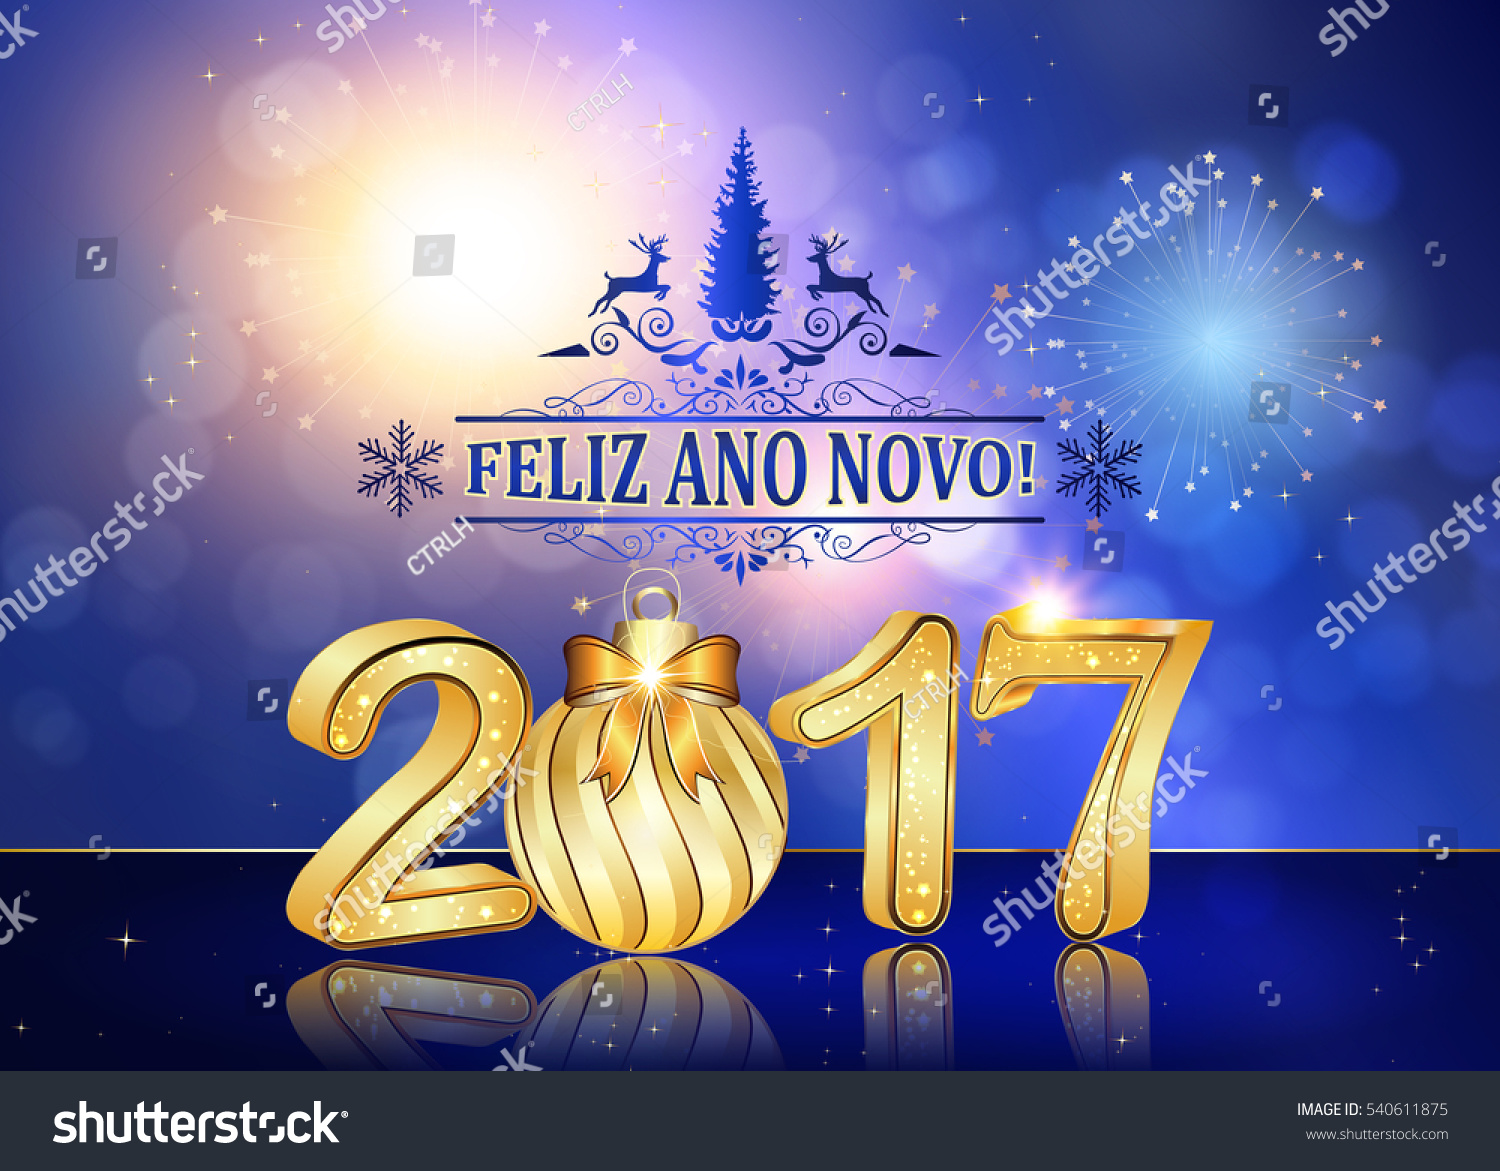 happy new year 2017 spanish language background greeting card with brightly colorful fireworks